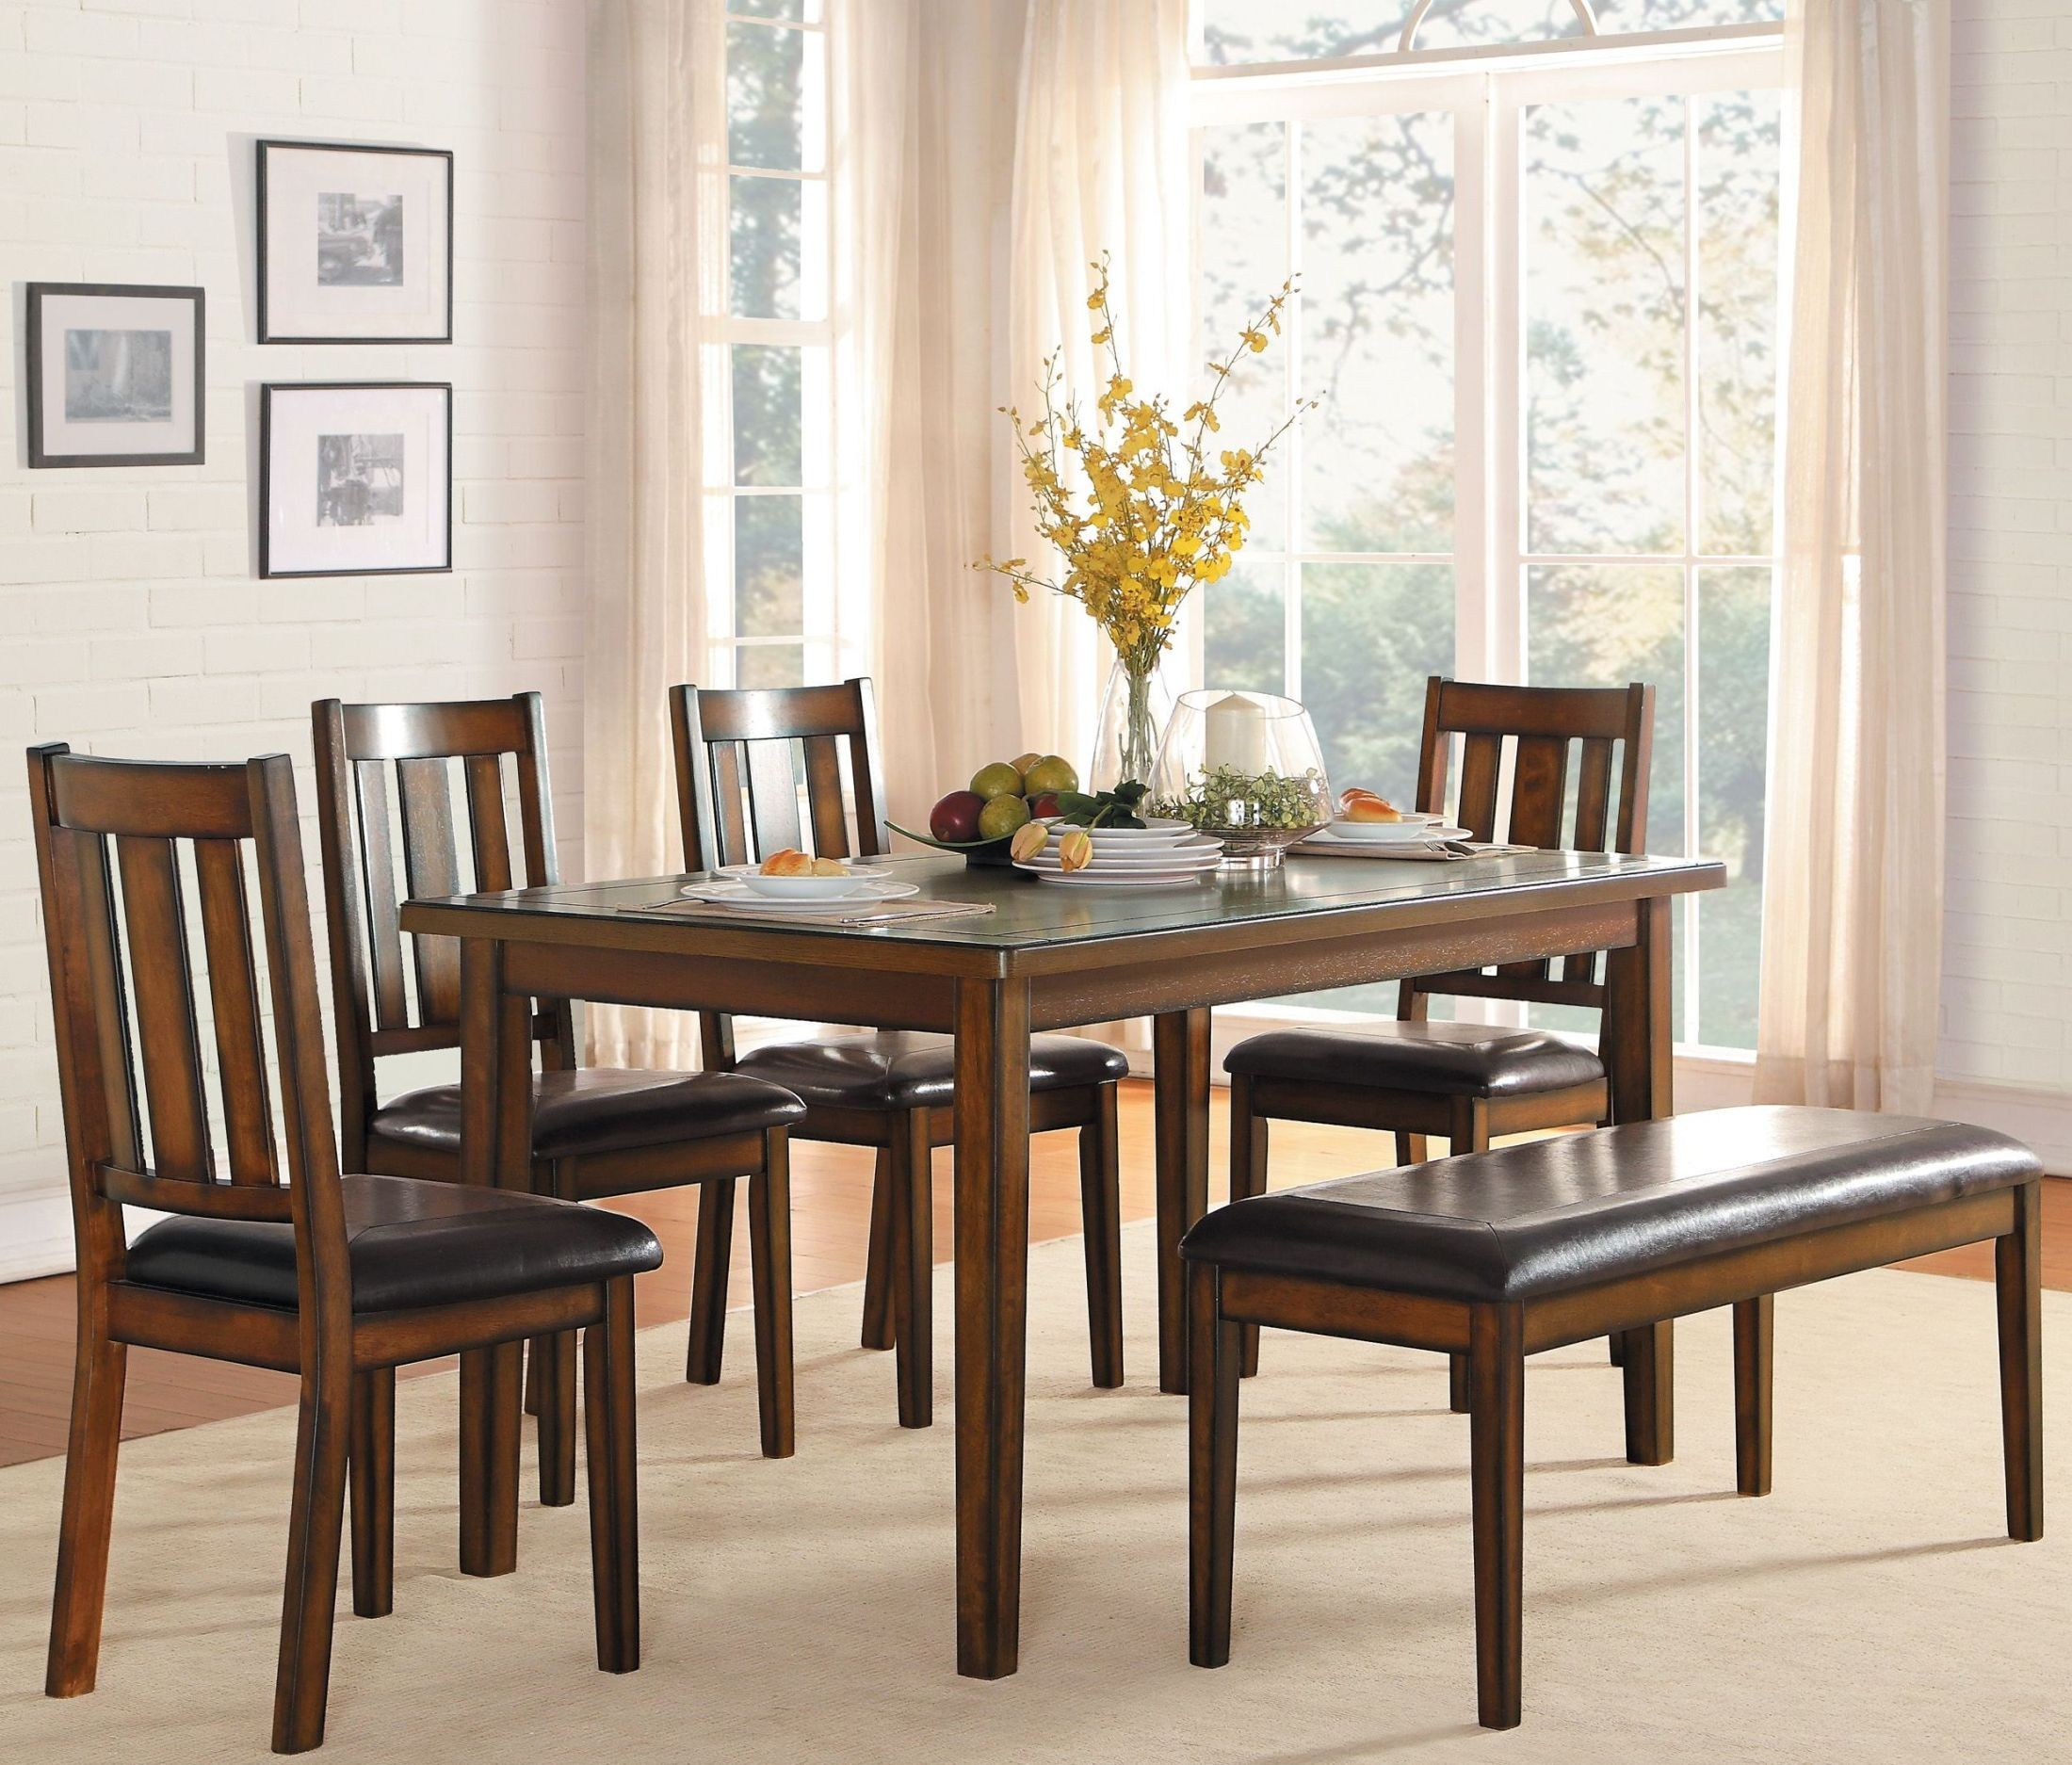 Delmar burnished brown 6 piece dining room set from for 6 piece dining room set